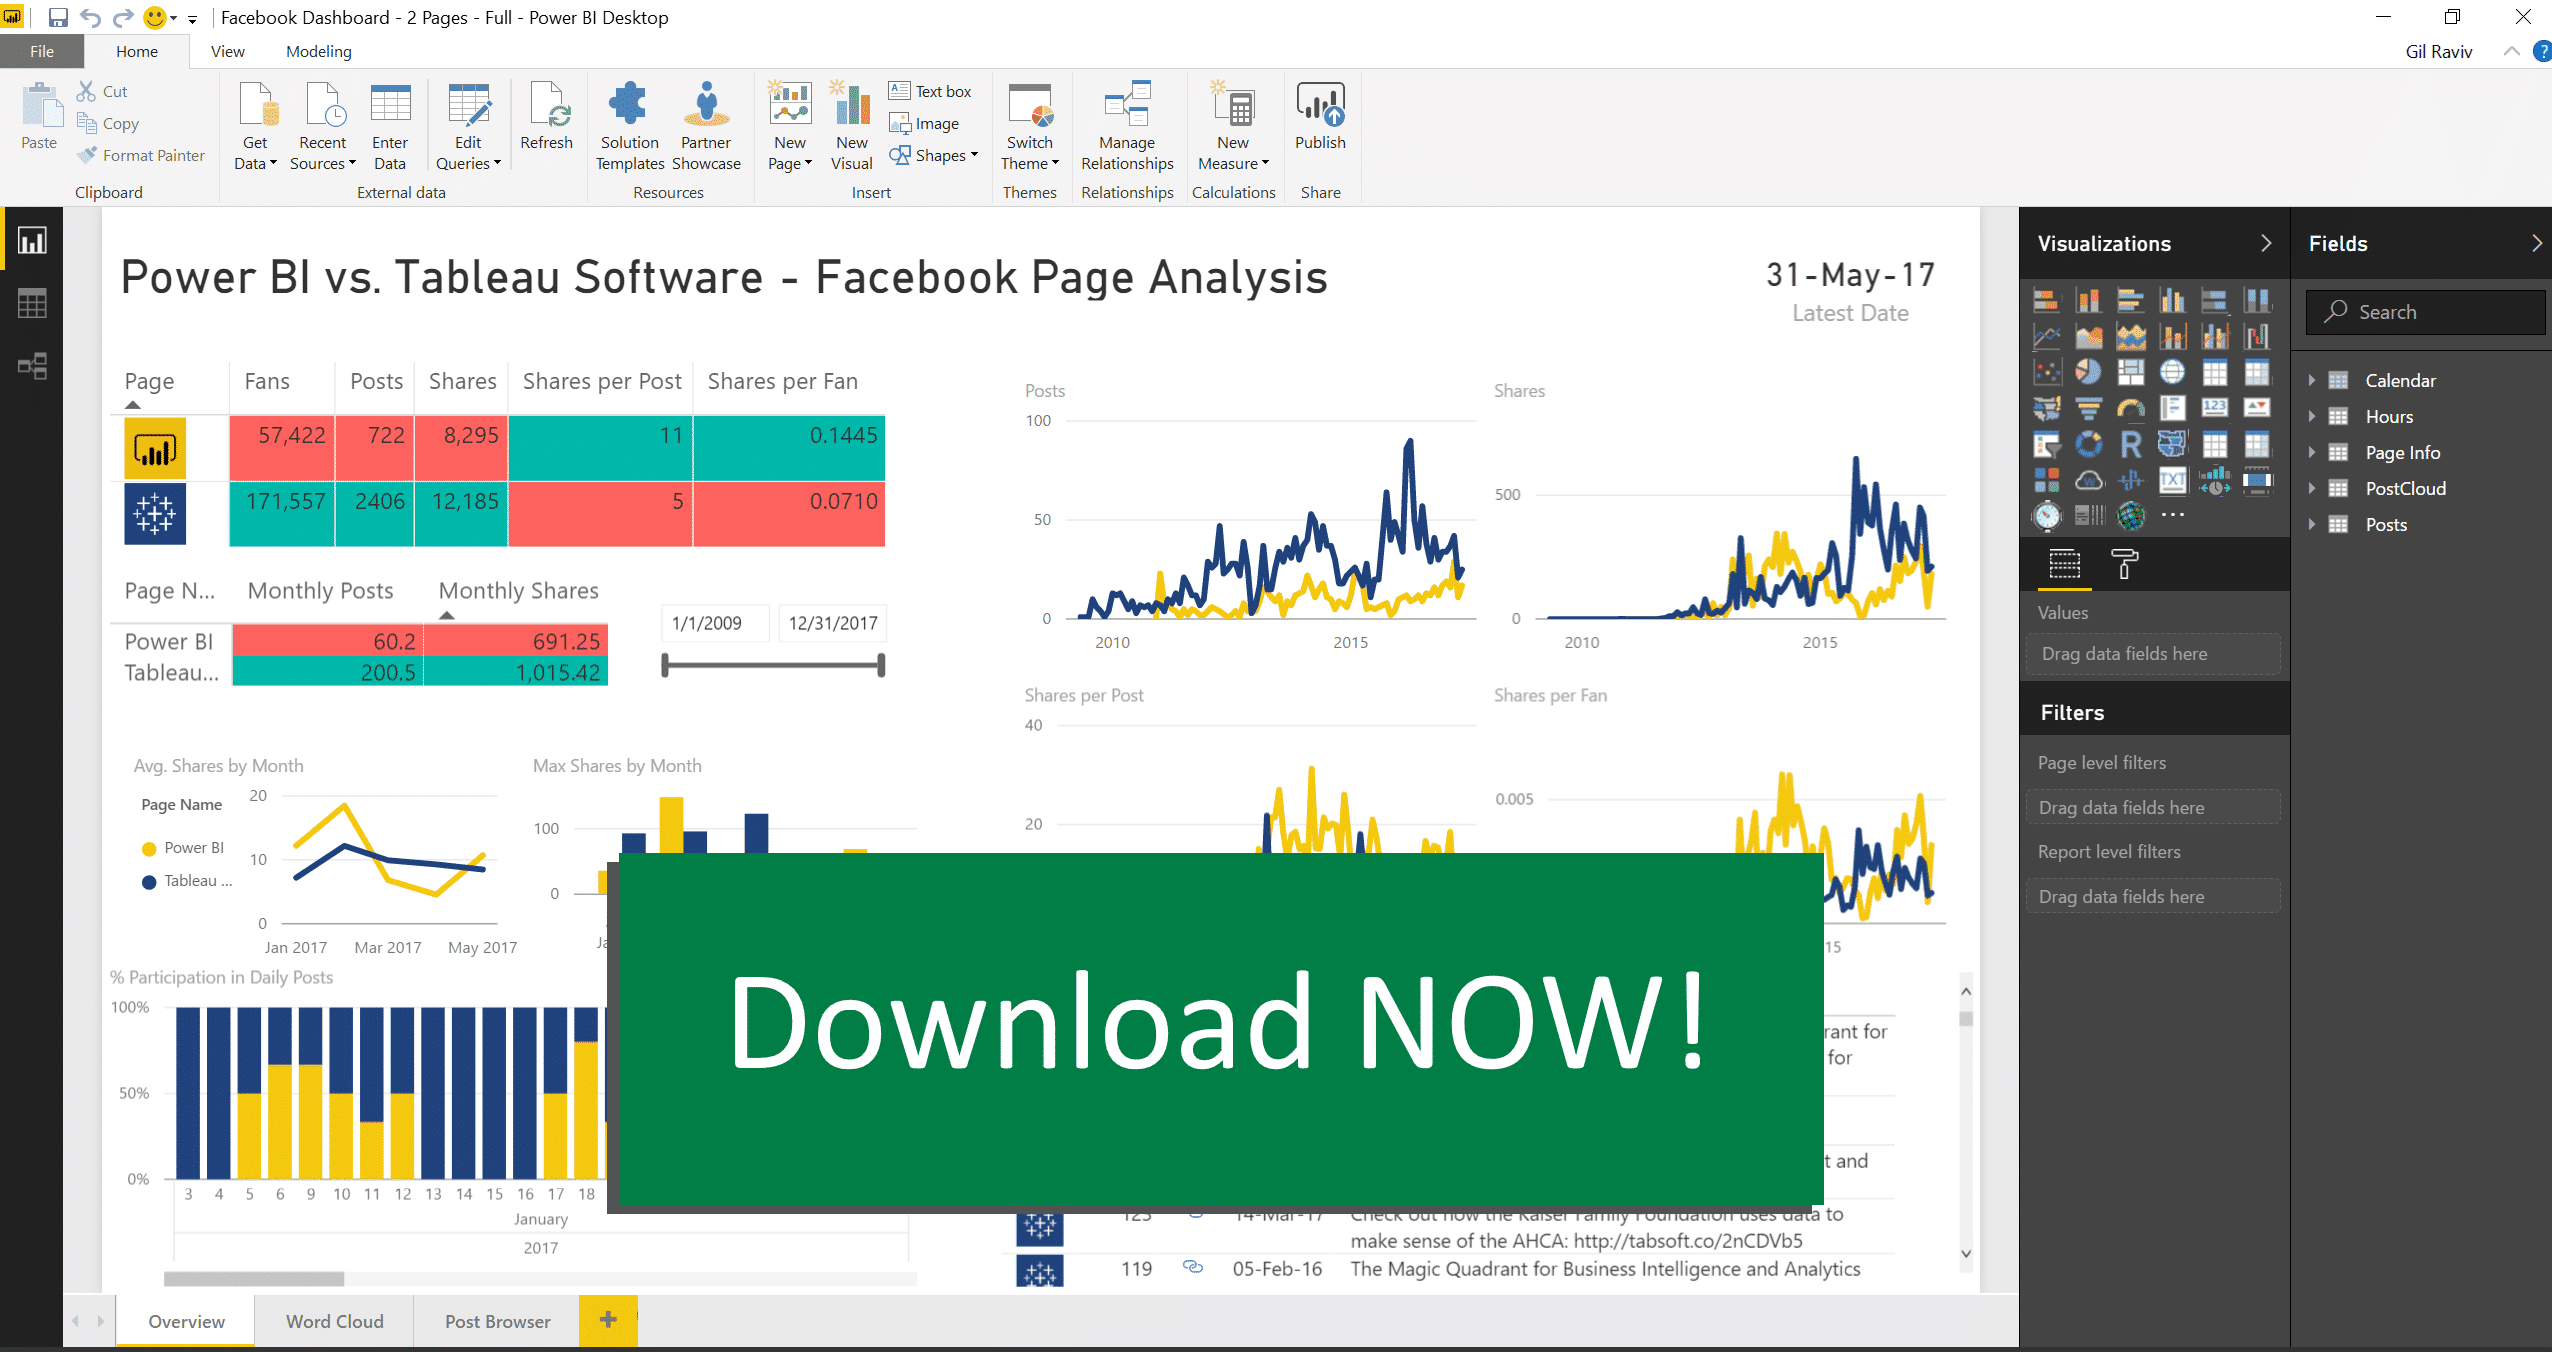 Analyze any twp Facebook pages in Power BI